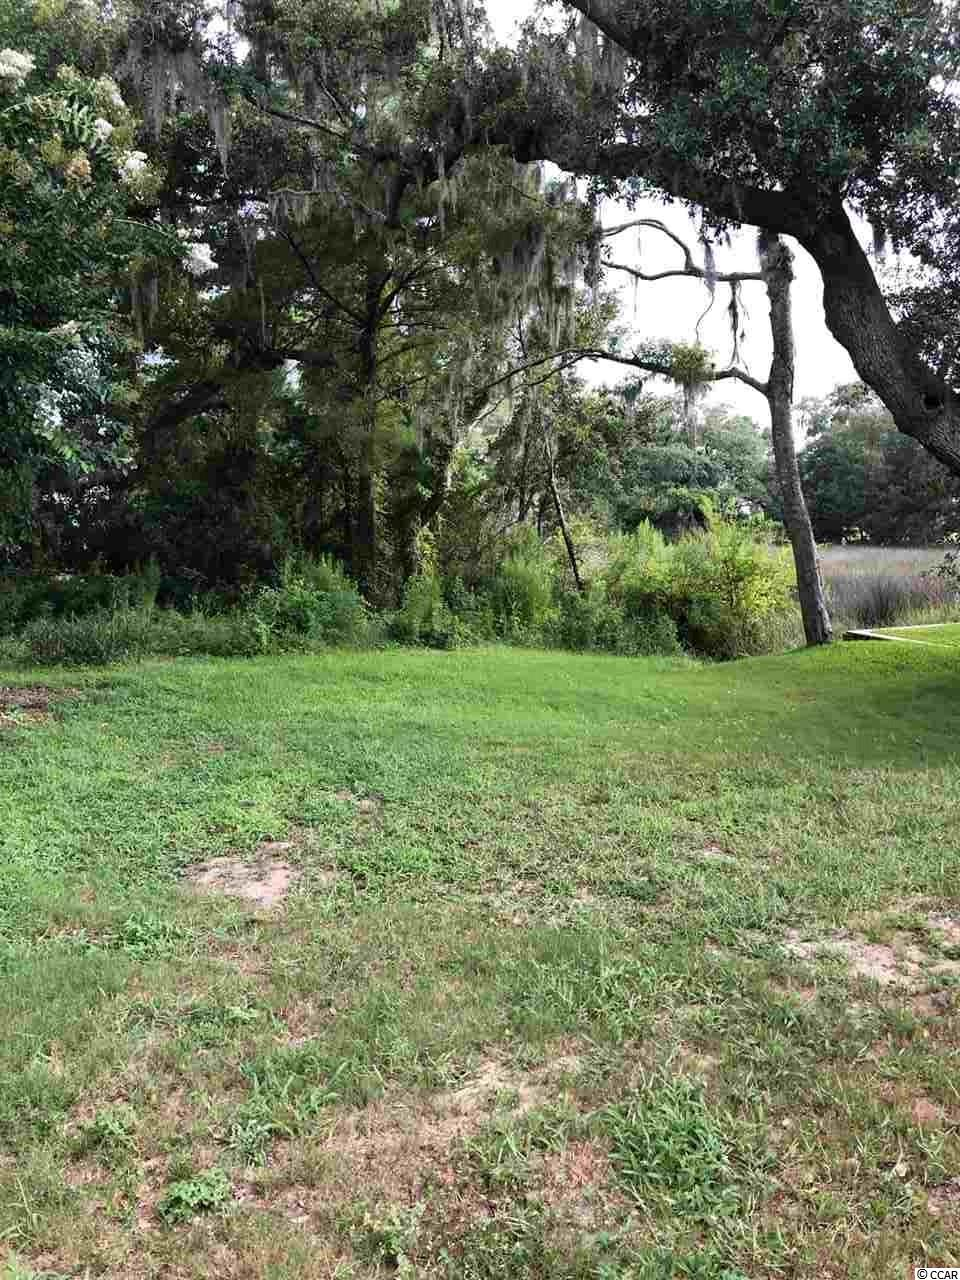 Builders and those of you searching to build with a view of the water and a lot previously approved for crabbing dock permit. Look at this highly desirable lot with a view. Lot boundaries extend into the marsh. Drop by and get out of your vehicle and walk toward the center of the lot and look back at the view toward the water. Don't let this attractively priced lot pass you by.